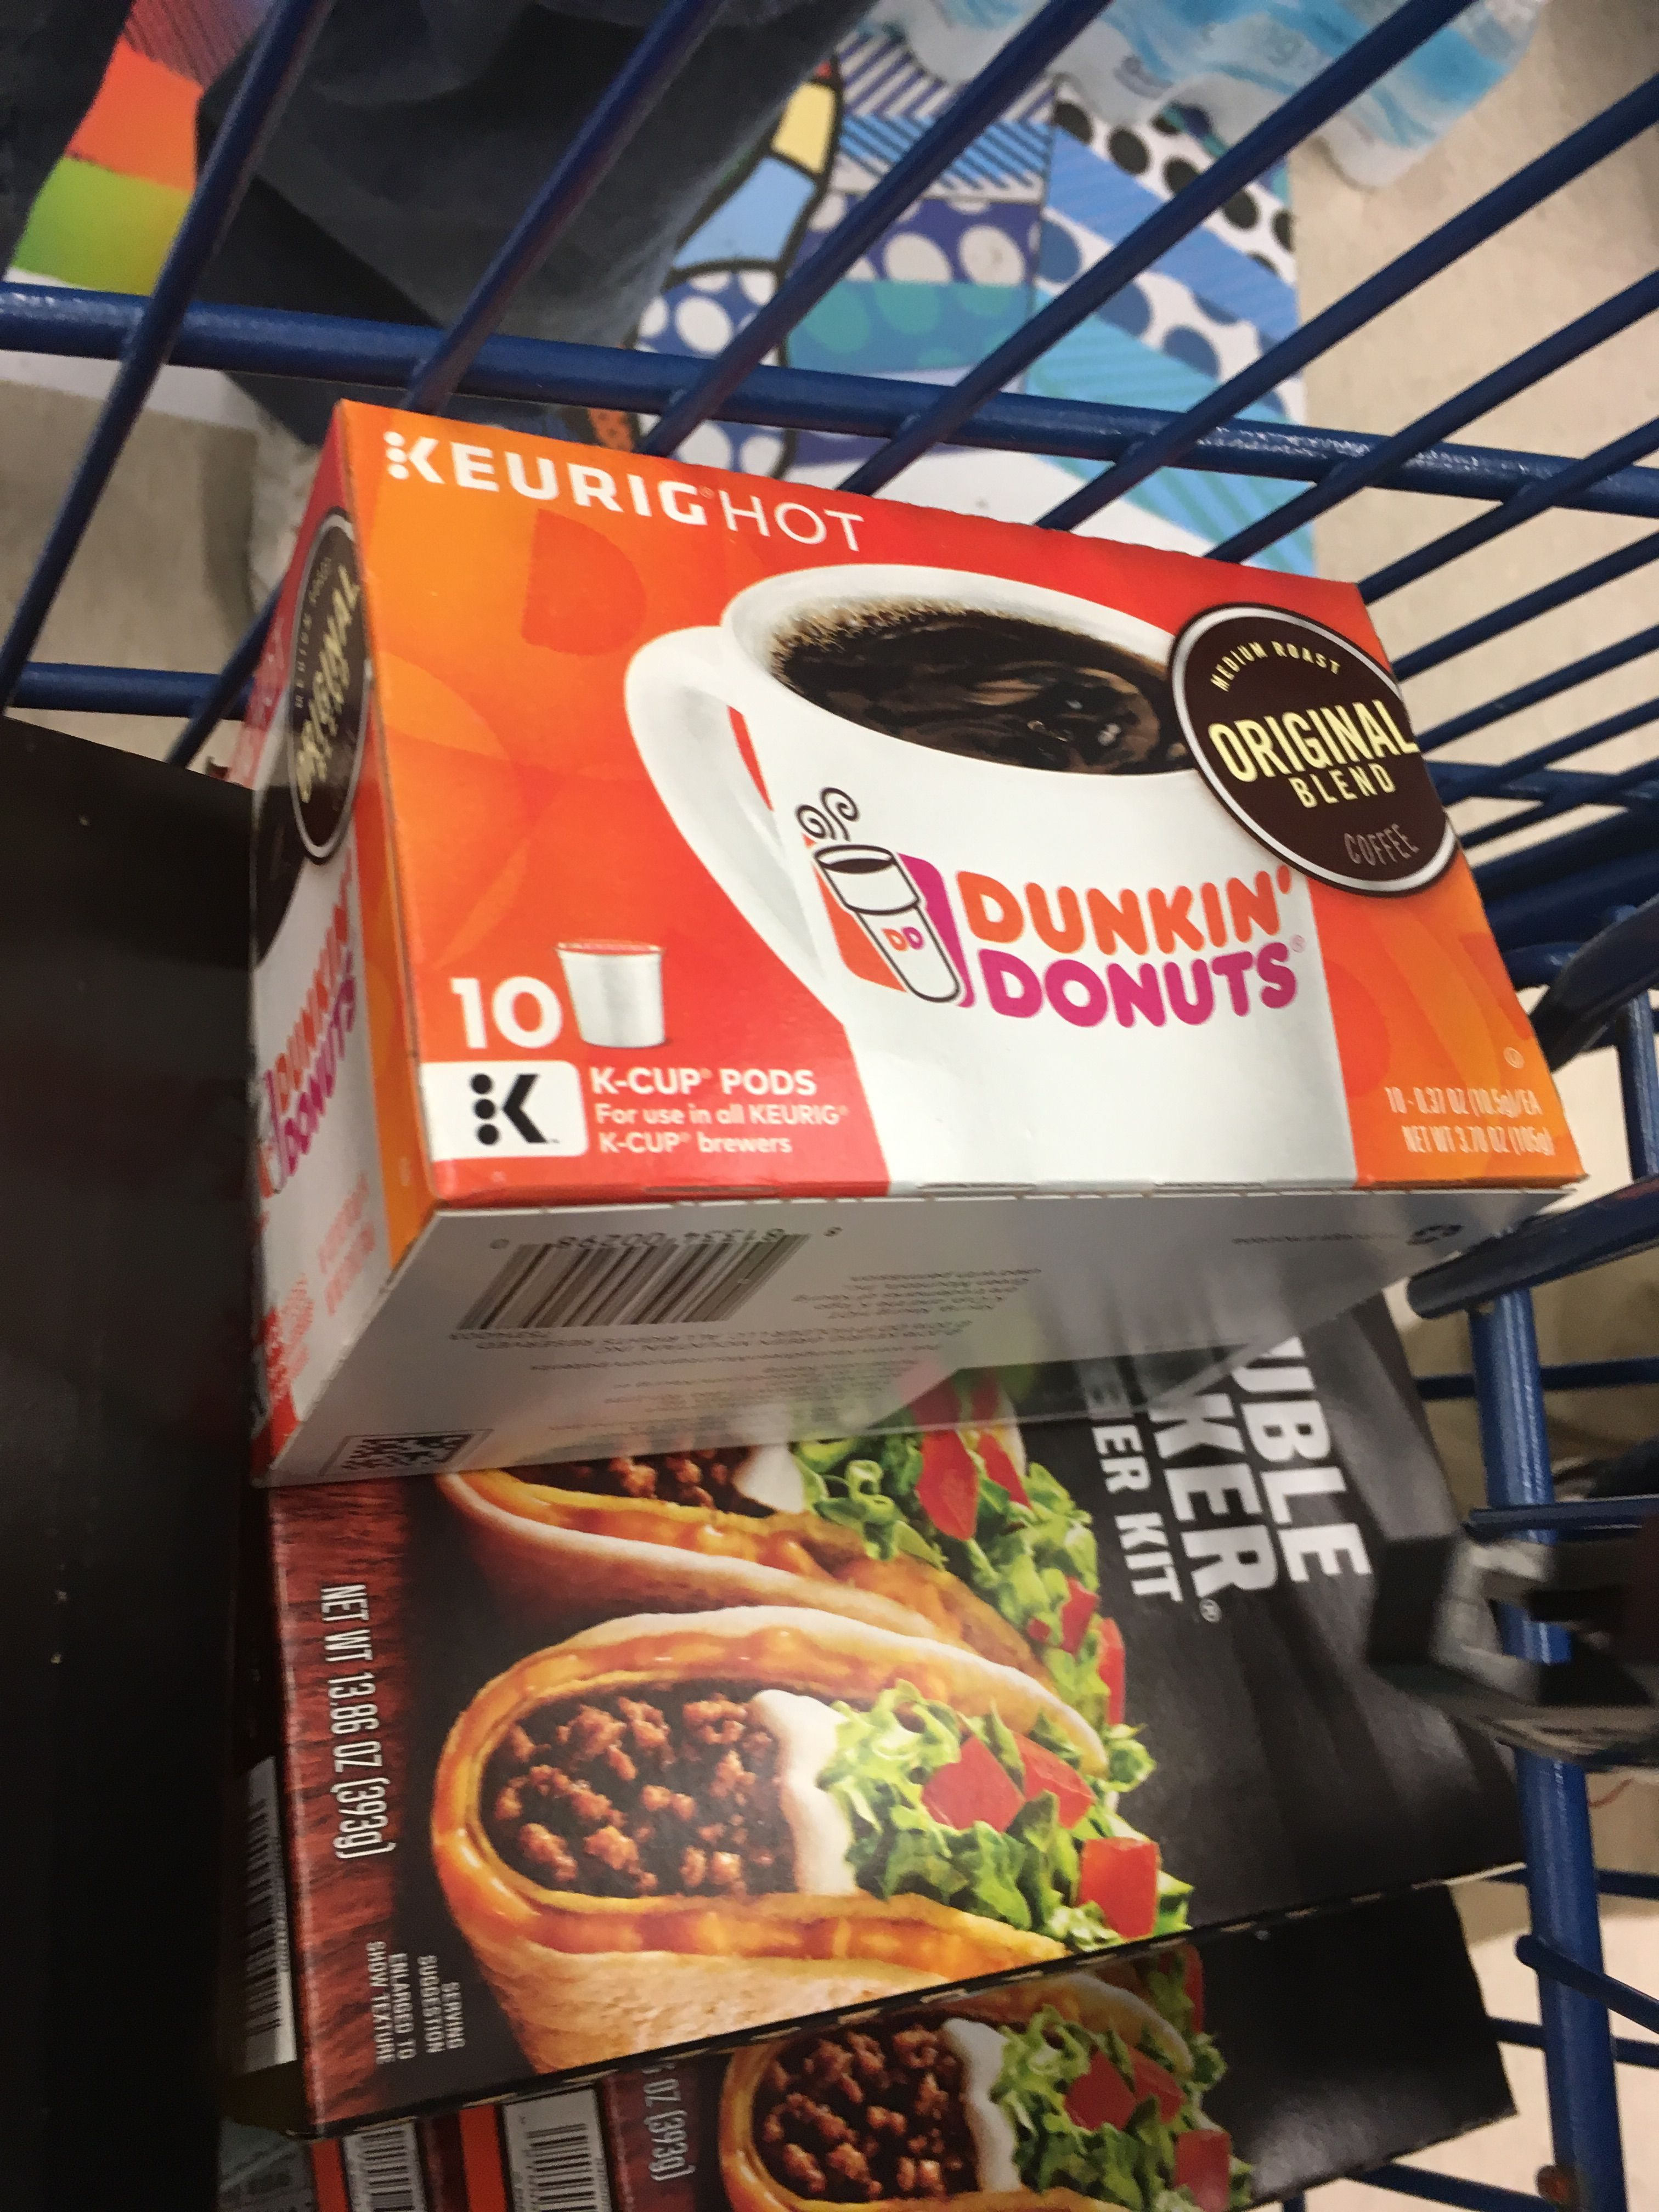 Smiley kit free sample of Dunkin' Donuts coffee Dunkin